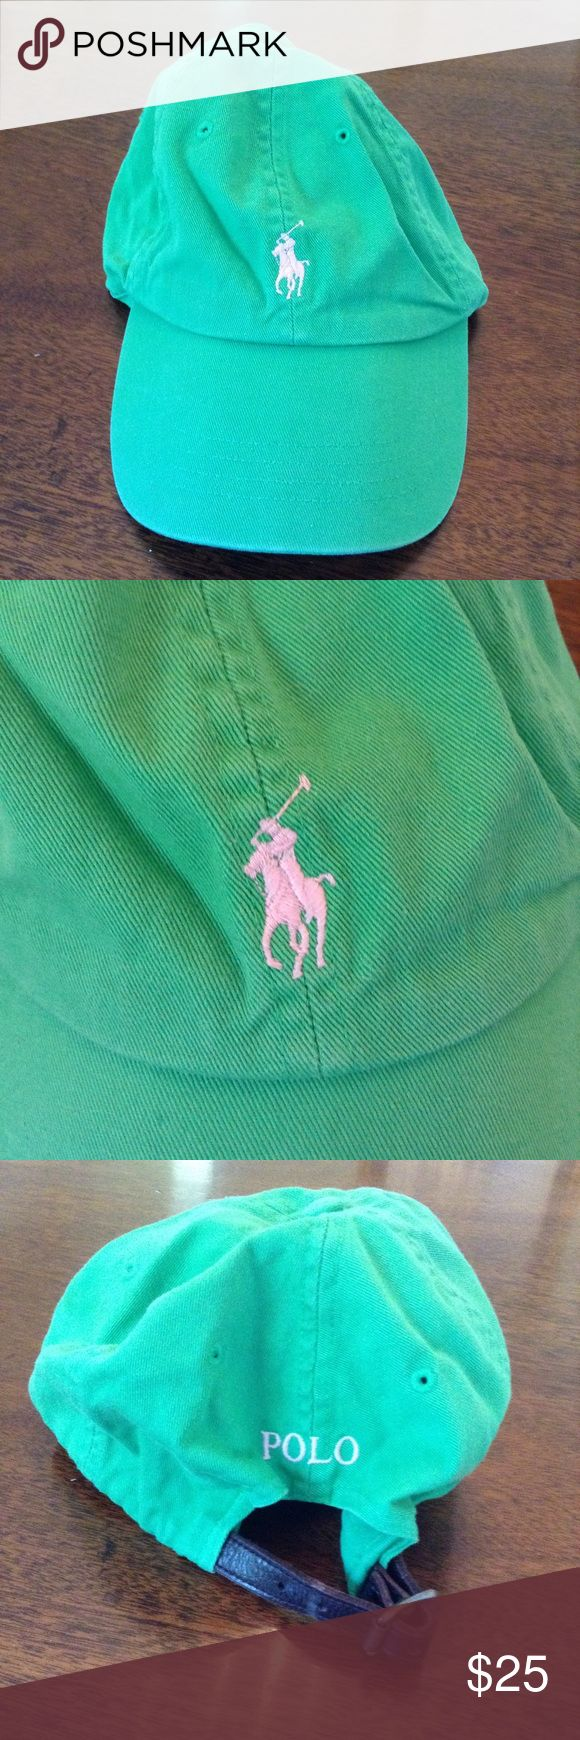 POLO RALPH LAUREN Green Baseball Cap EUC Green Polo baseball cap with pink Polo Player. EUC. Leather adjustable strap on back.  Bundle and I'll send a private discount AND free shipping on orders over $50!!  Smoke free home. Thanks for looking! :) Polo by Ralph Lauren Accessories Hats